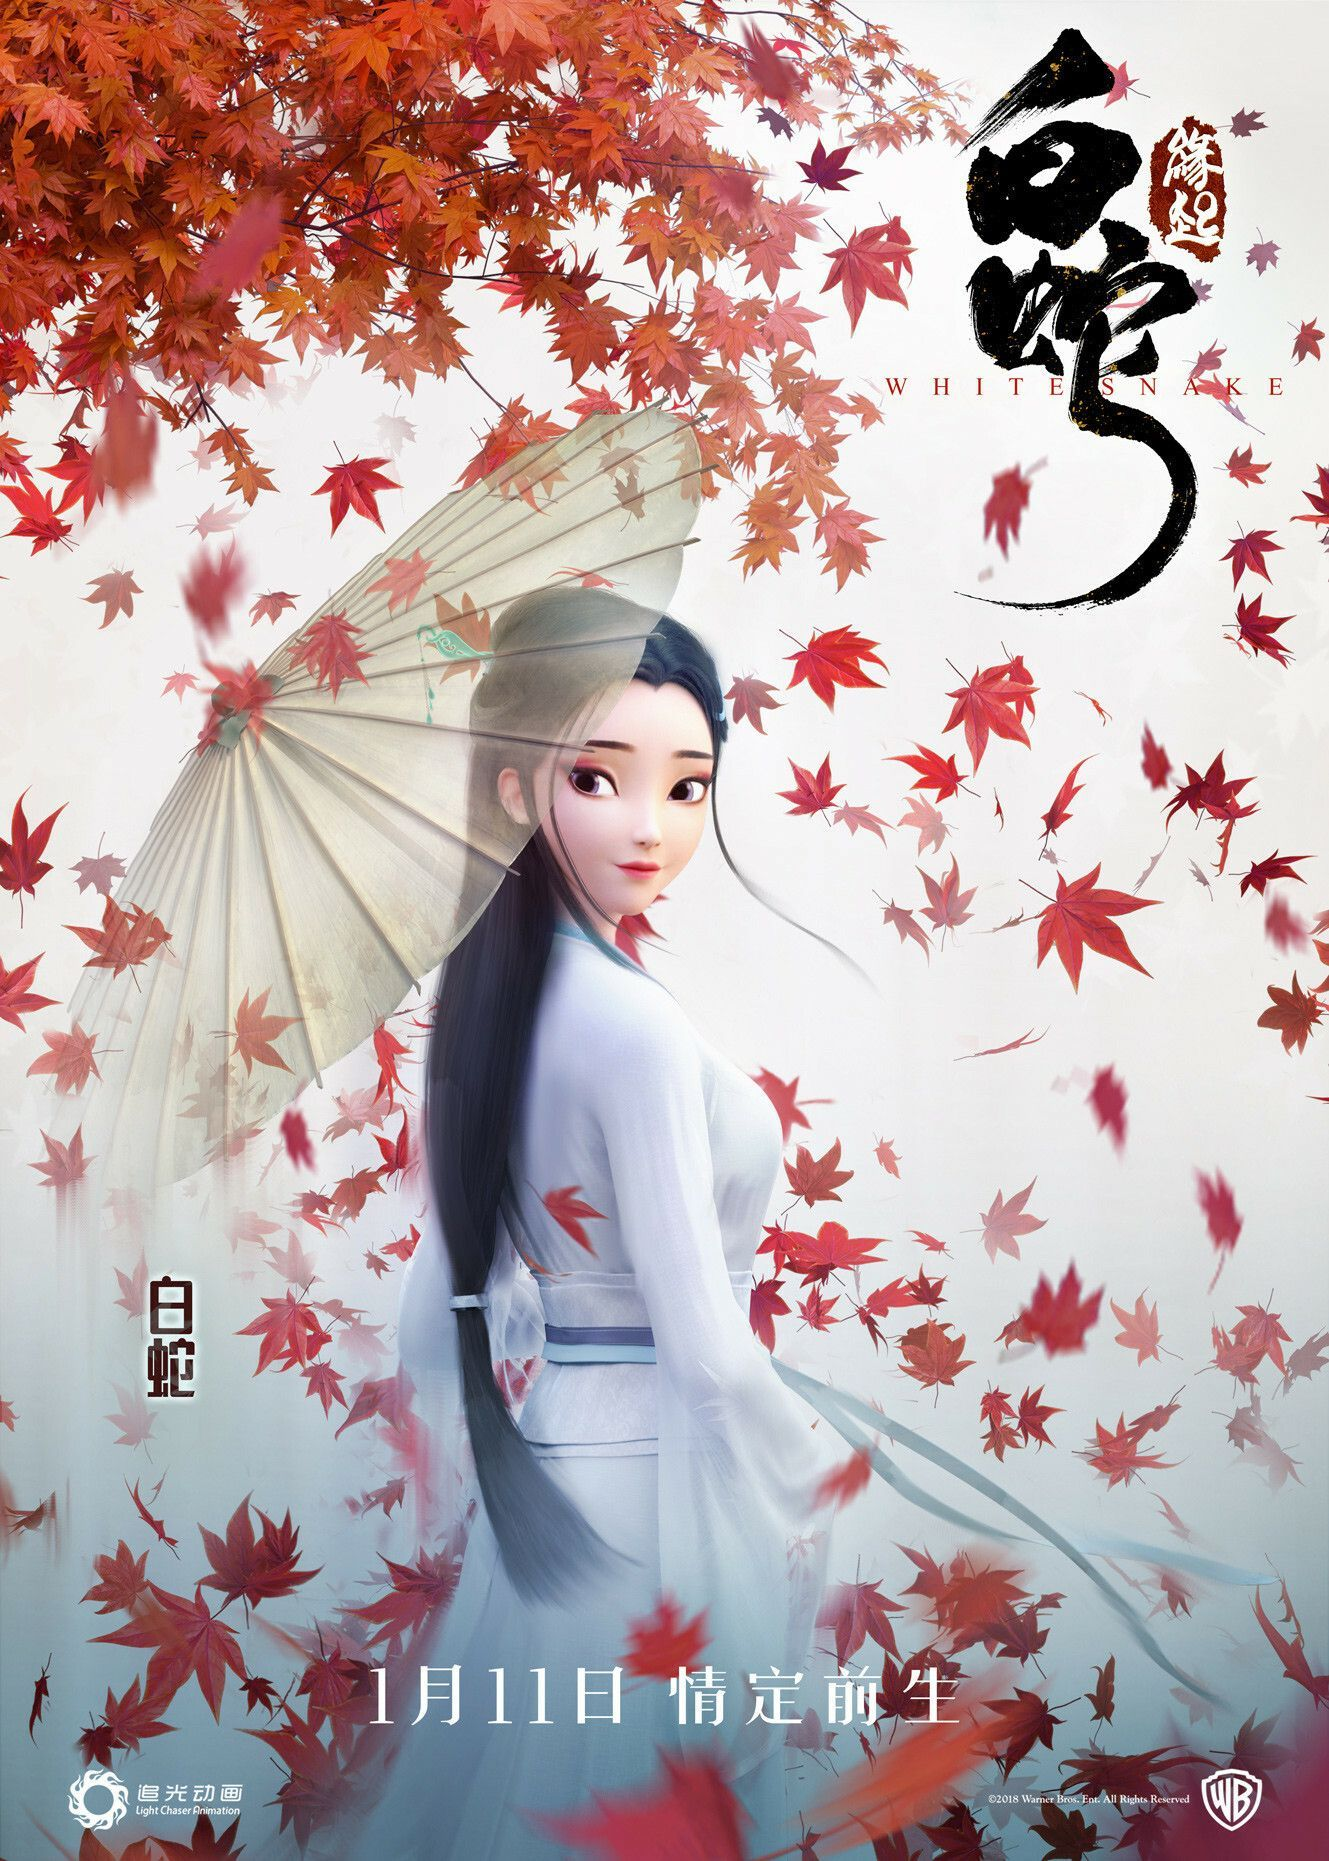 White Snake Movie Wallpapers ...